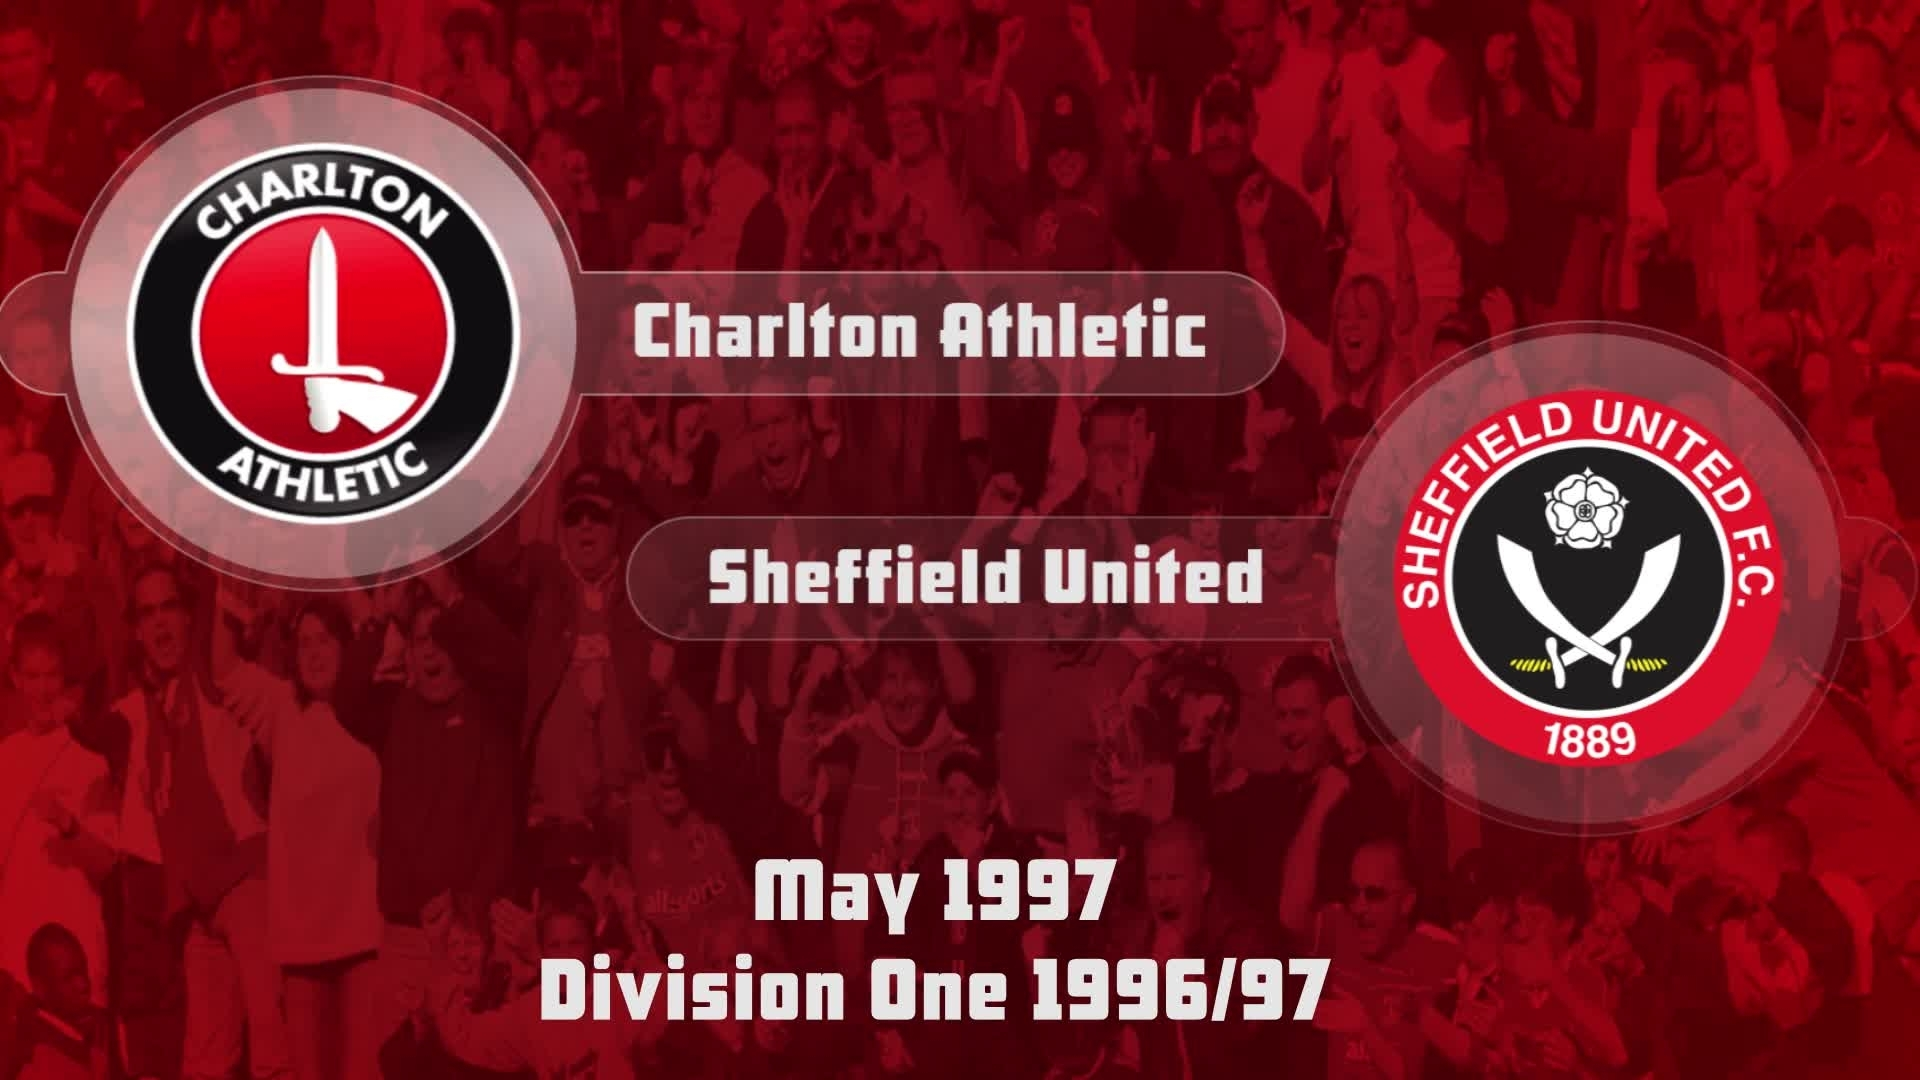 52 HIGHLIGHTS | Charlton 0 Sheffied United 0 (May 1997)